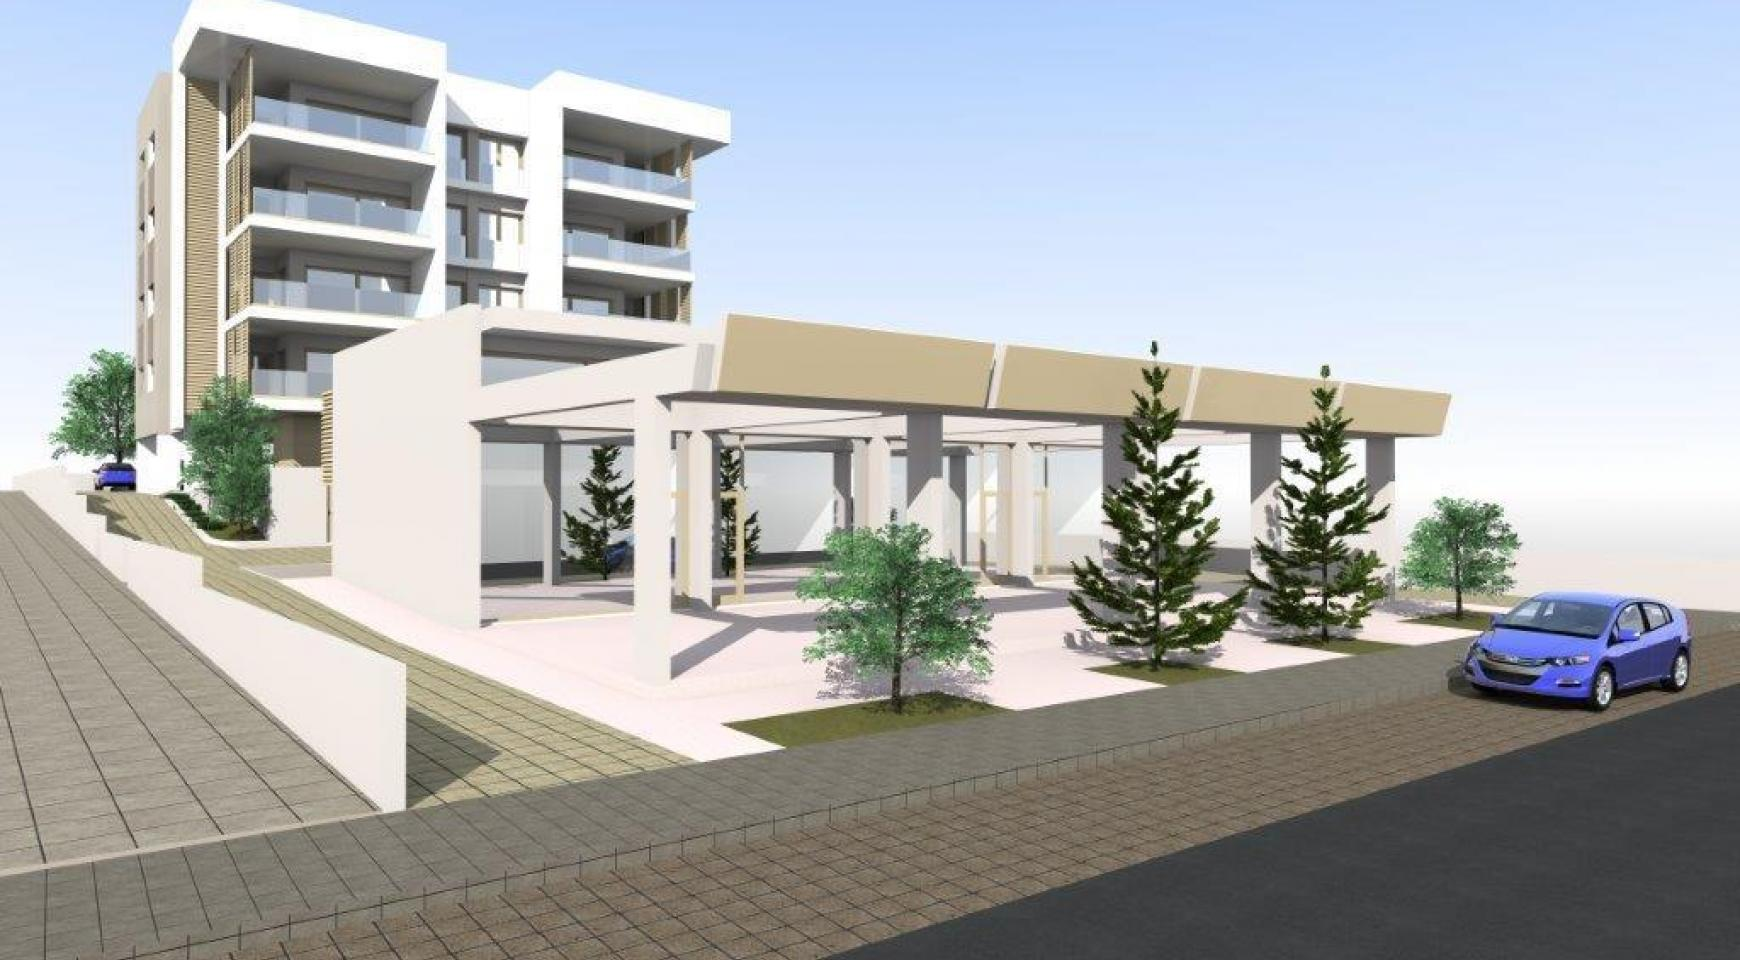 New Spacious 3 Bedroom Apartment  near the Sea - 2